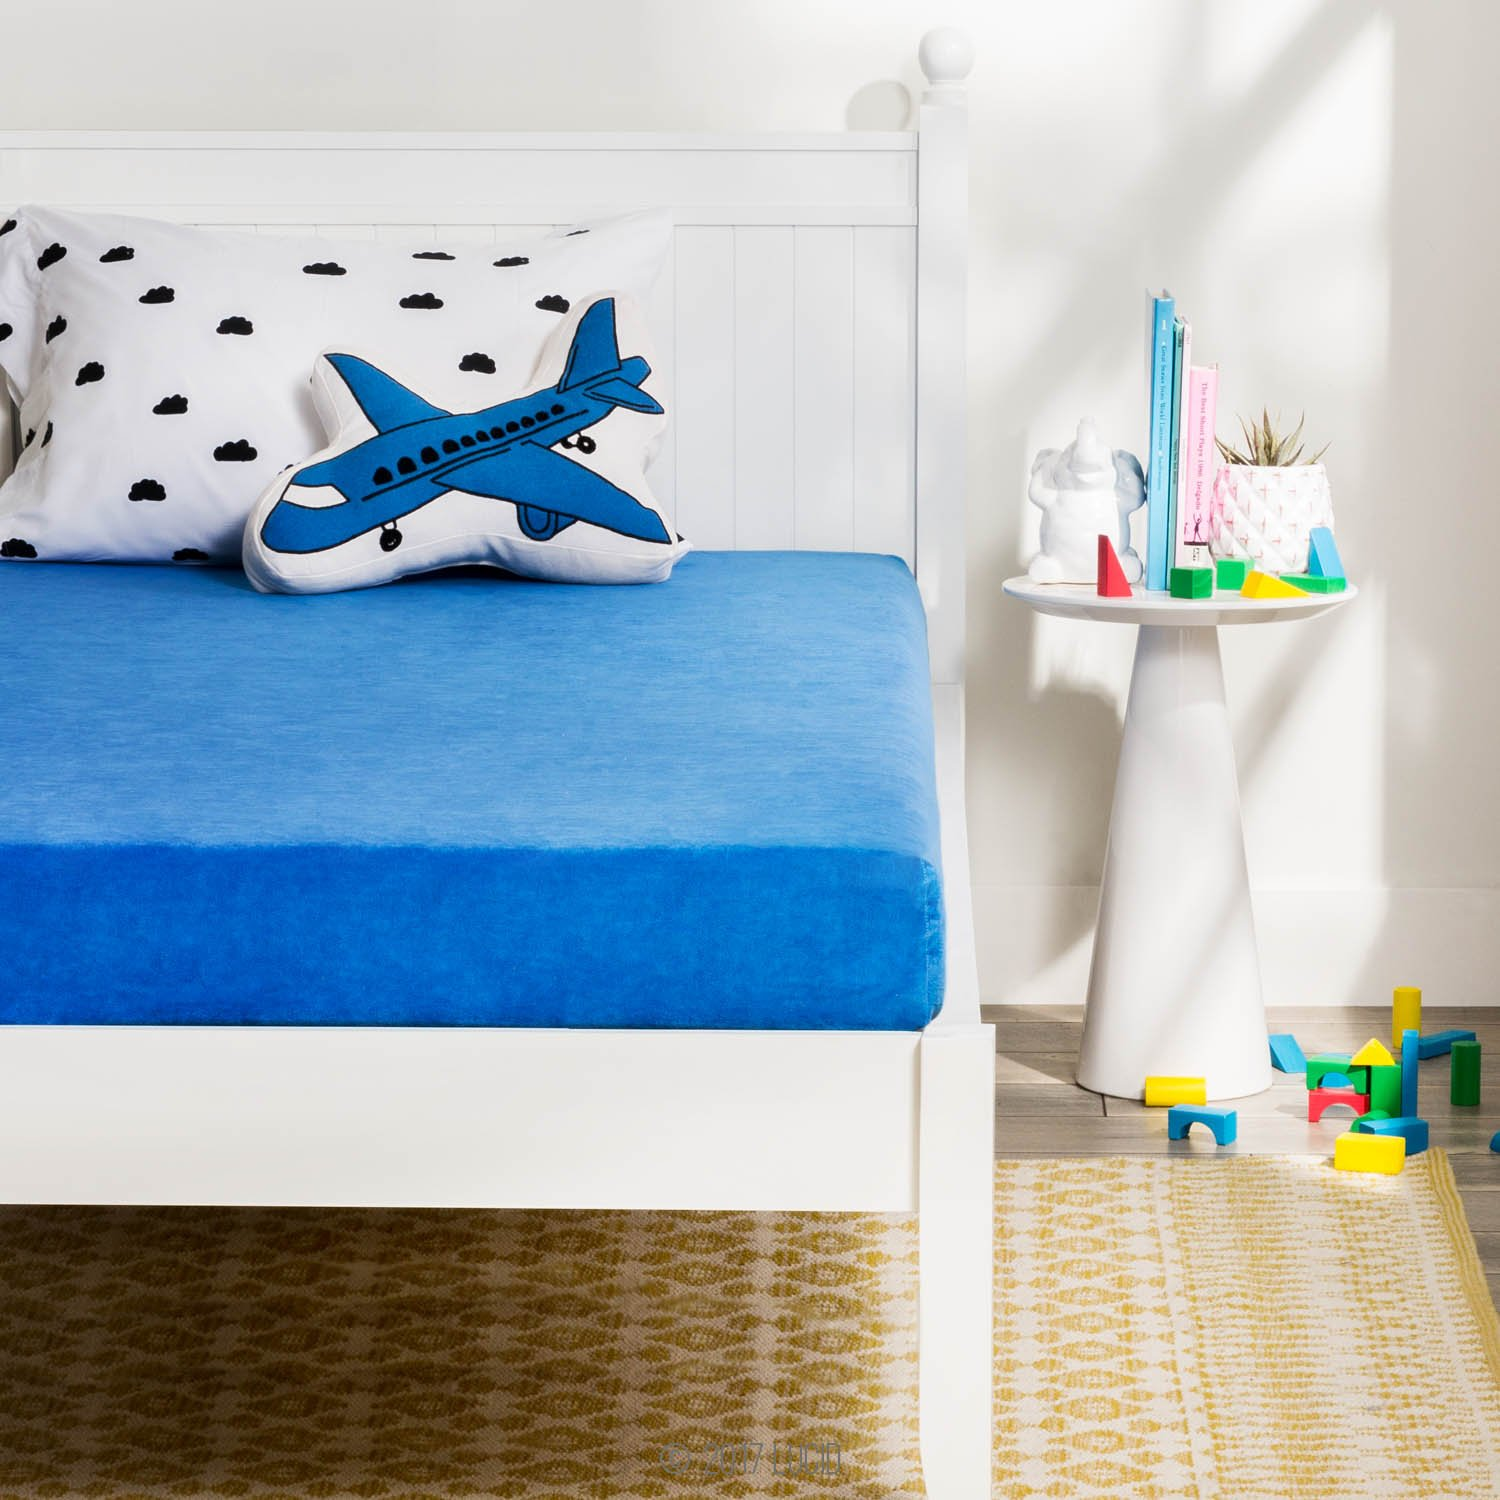 LUCID 6 Inch Youth Gel Memory Foam Mattress - Velour Cover - Great for Children and Teens - Full - Blue